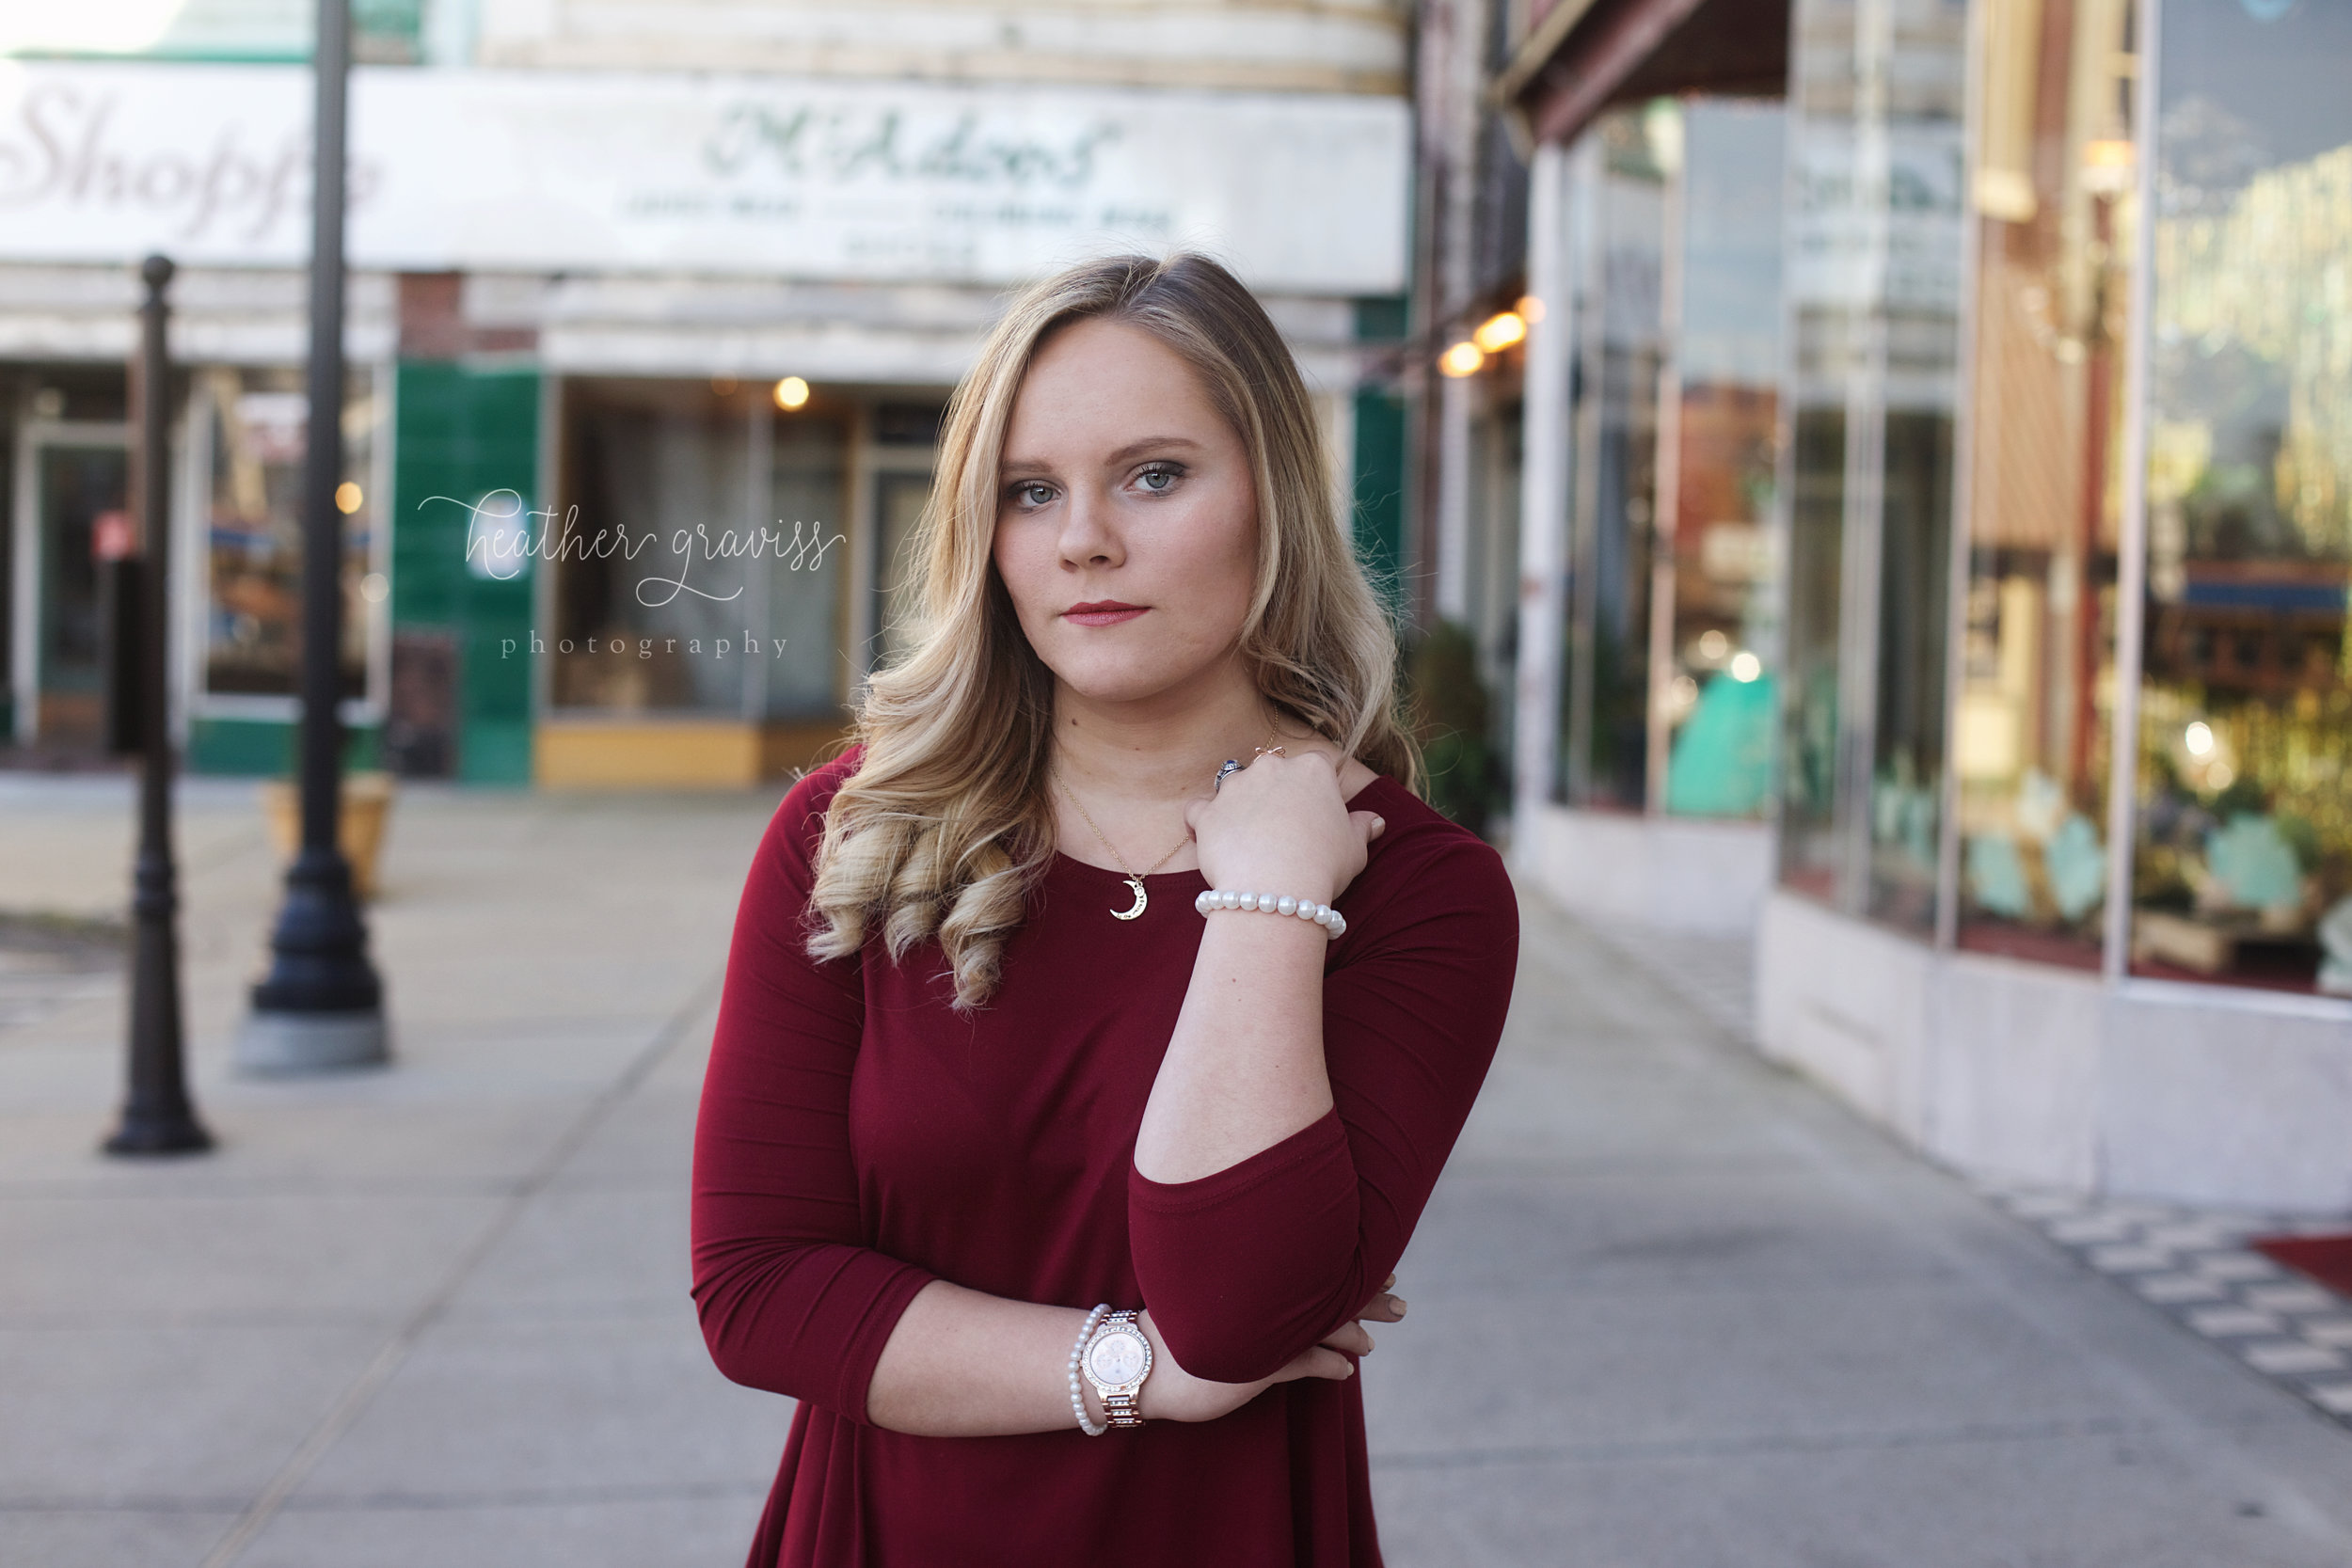 nashville tn senior photography 010.jpg